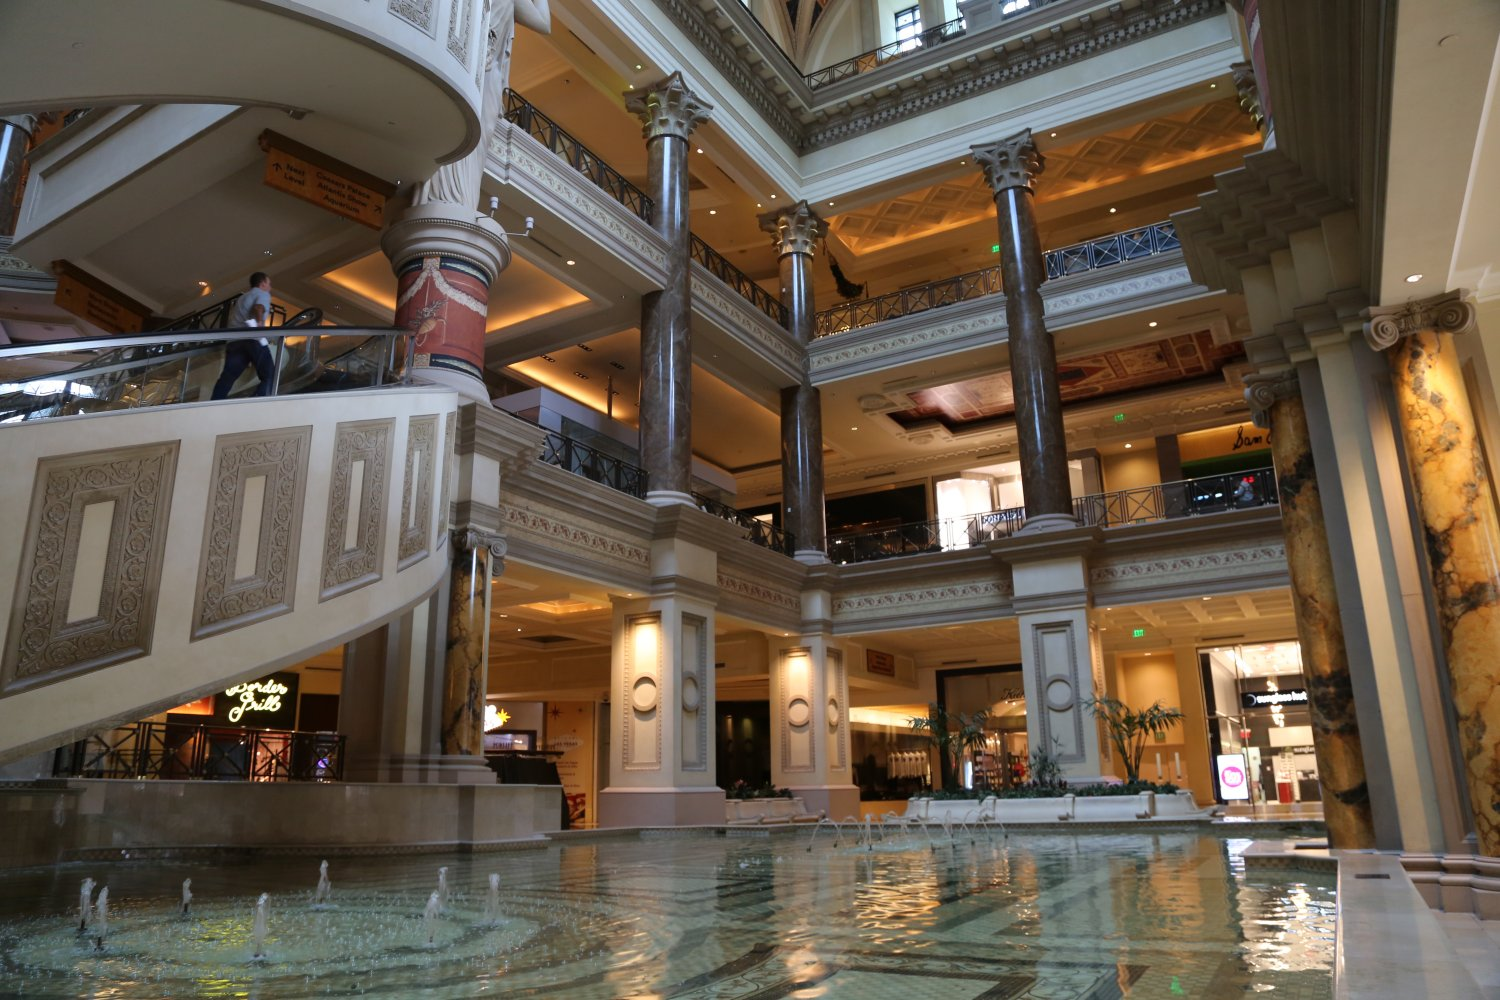 Bills saloon and casino gambling machine pay out code scanner